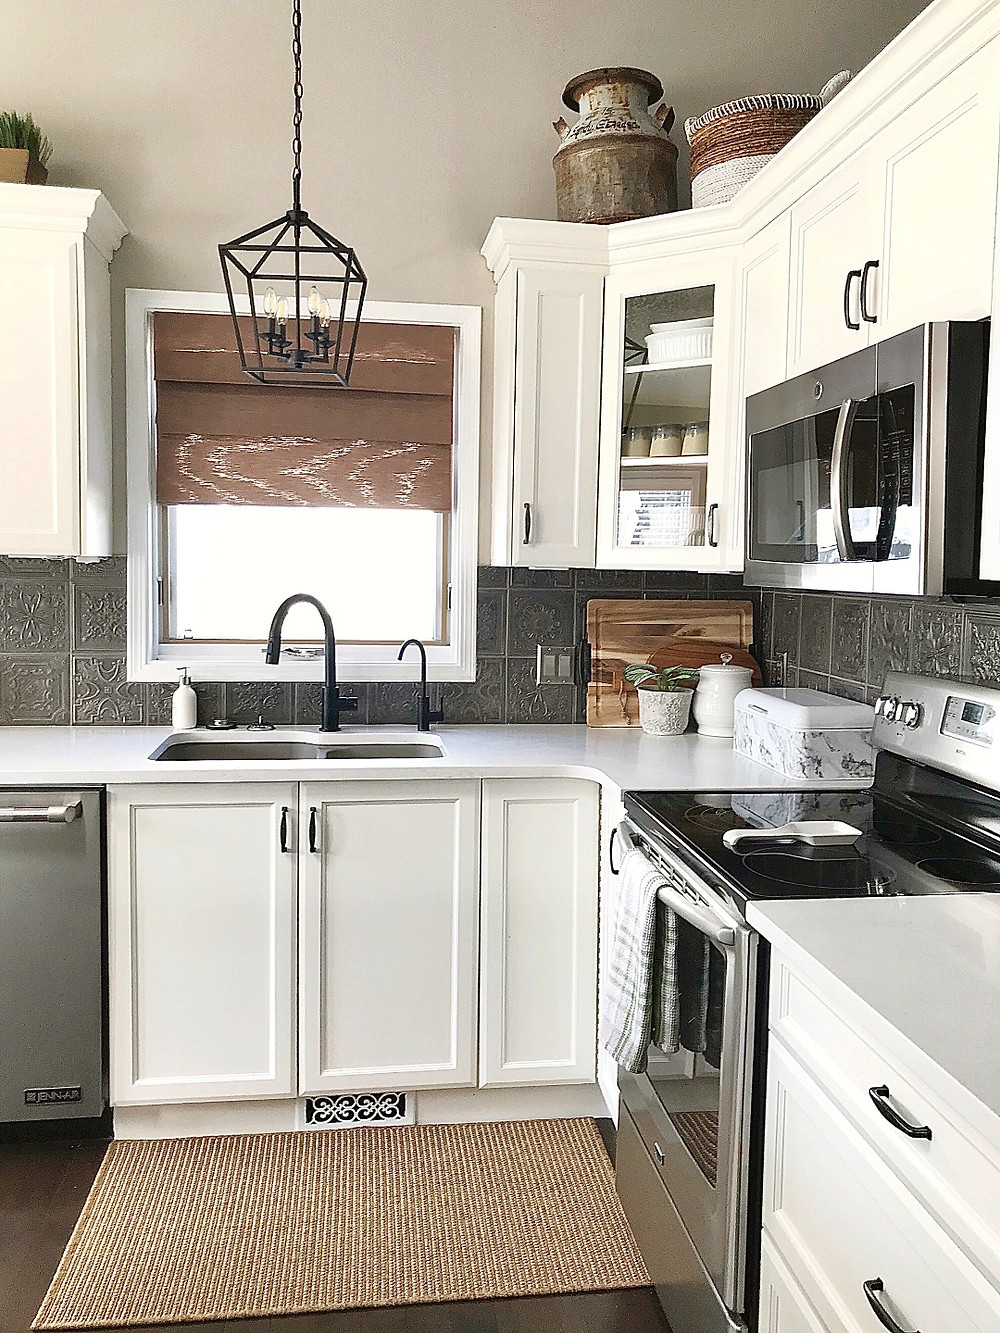 Modern Farmhouse Kitchen Makeover | Repainted Cabinets and Unique Backsplash